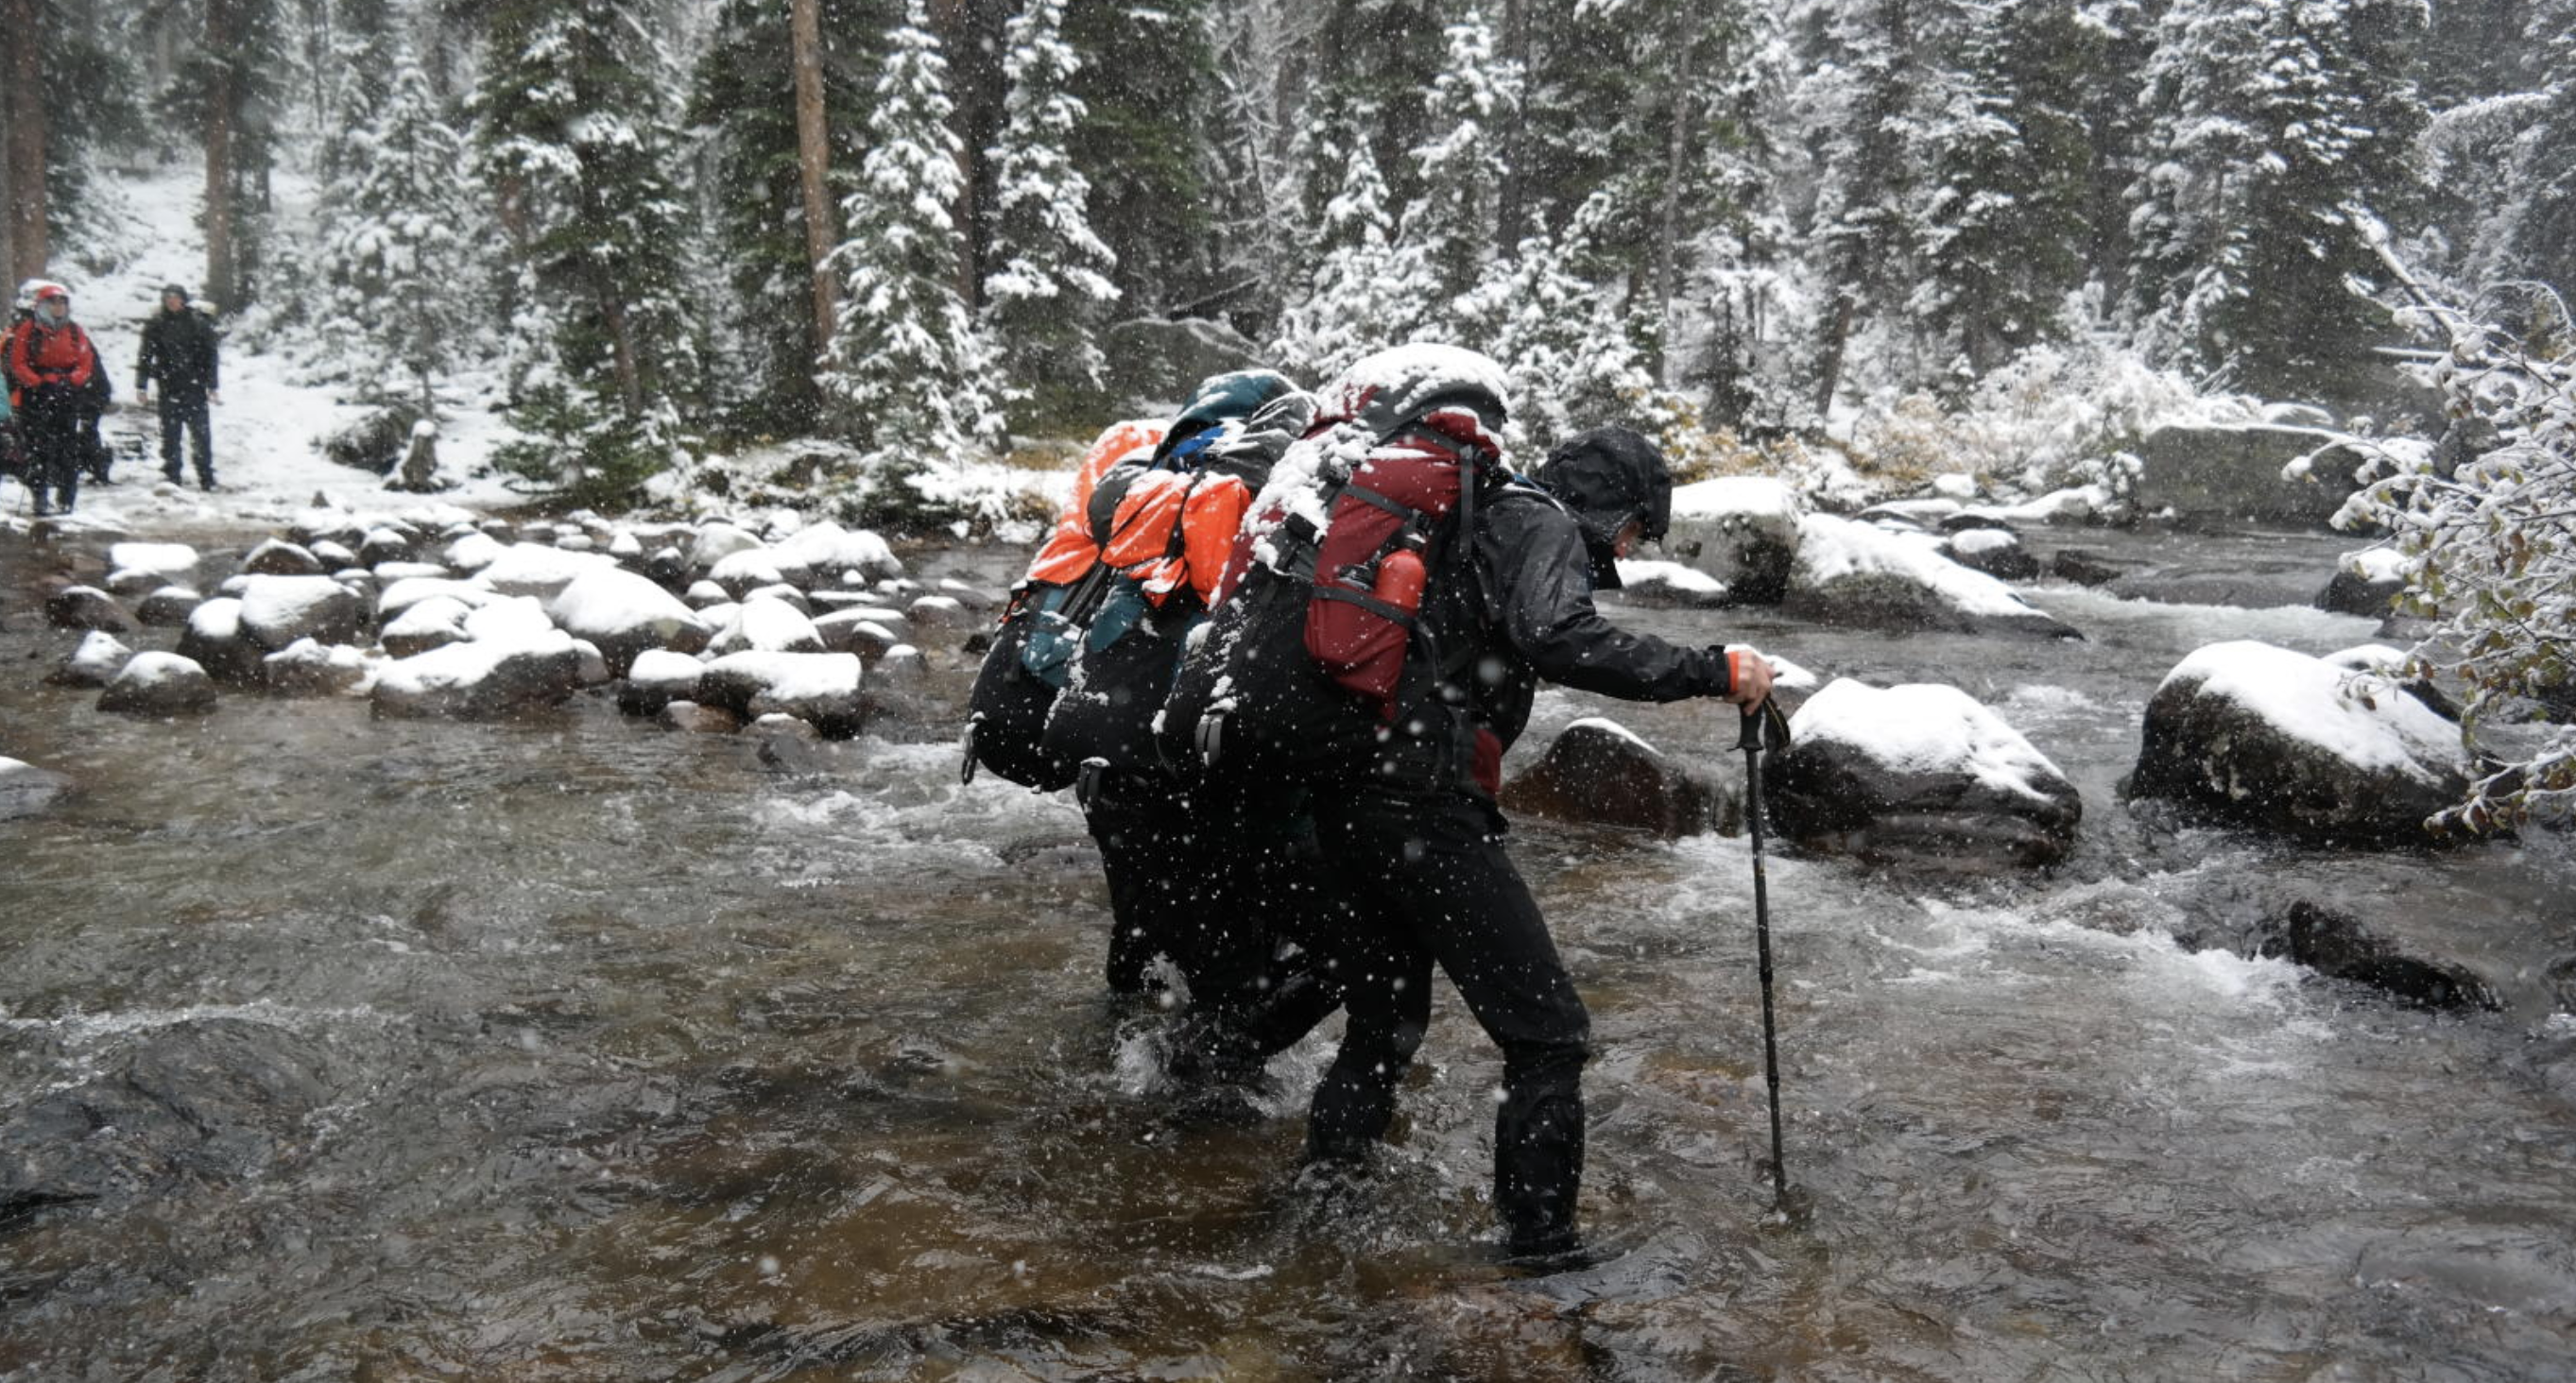 Case Study: Cold Injuries on a Hike